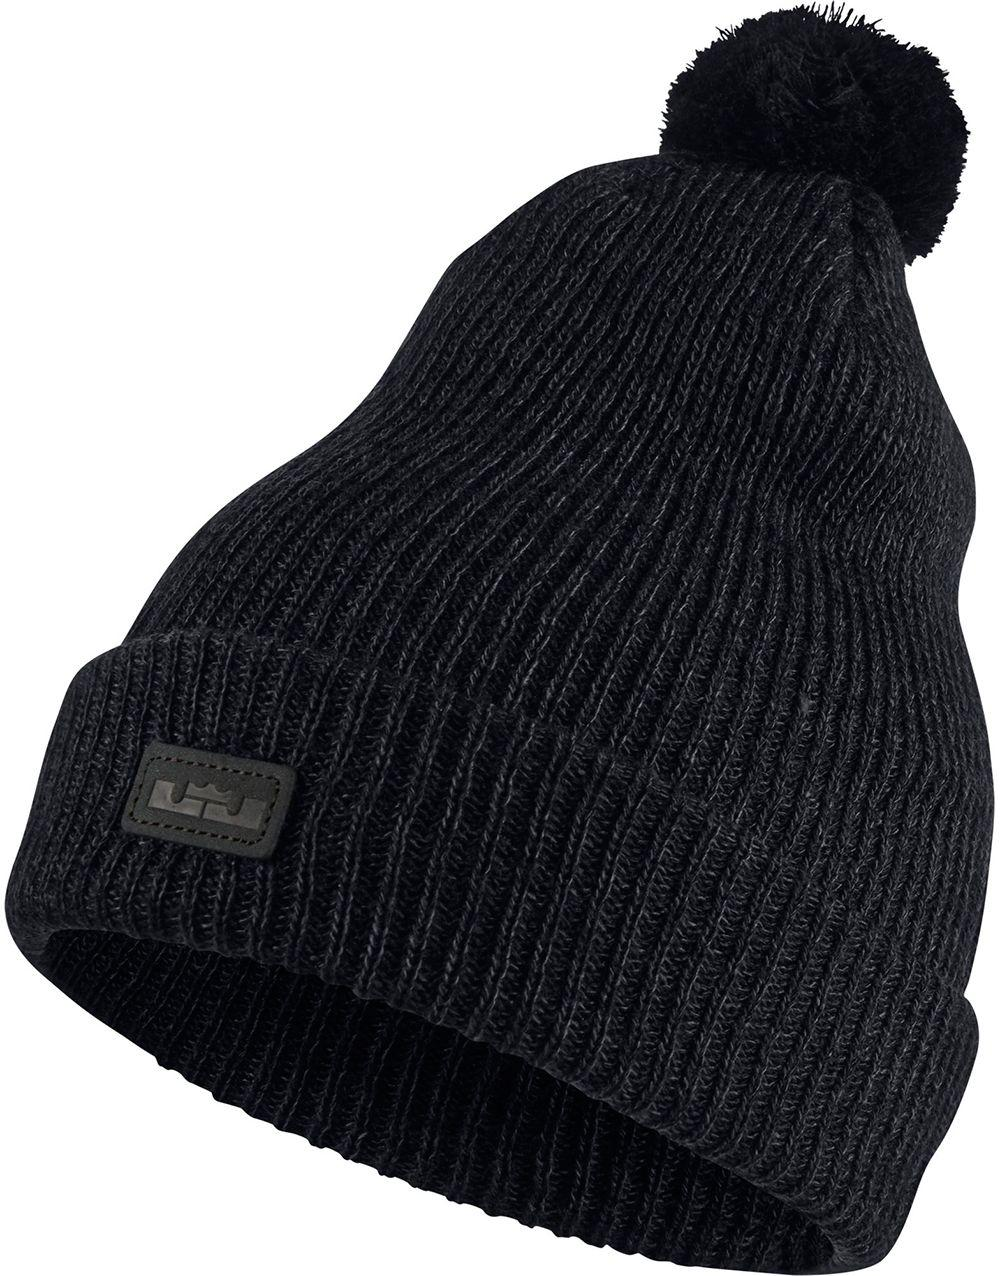 64183816 Nike Lebron Xii Knit Hat in Black for Men - Lyst